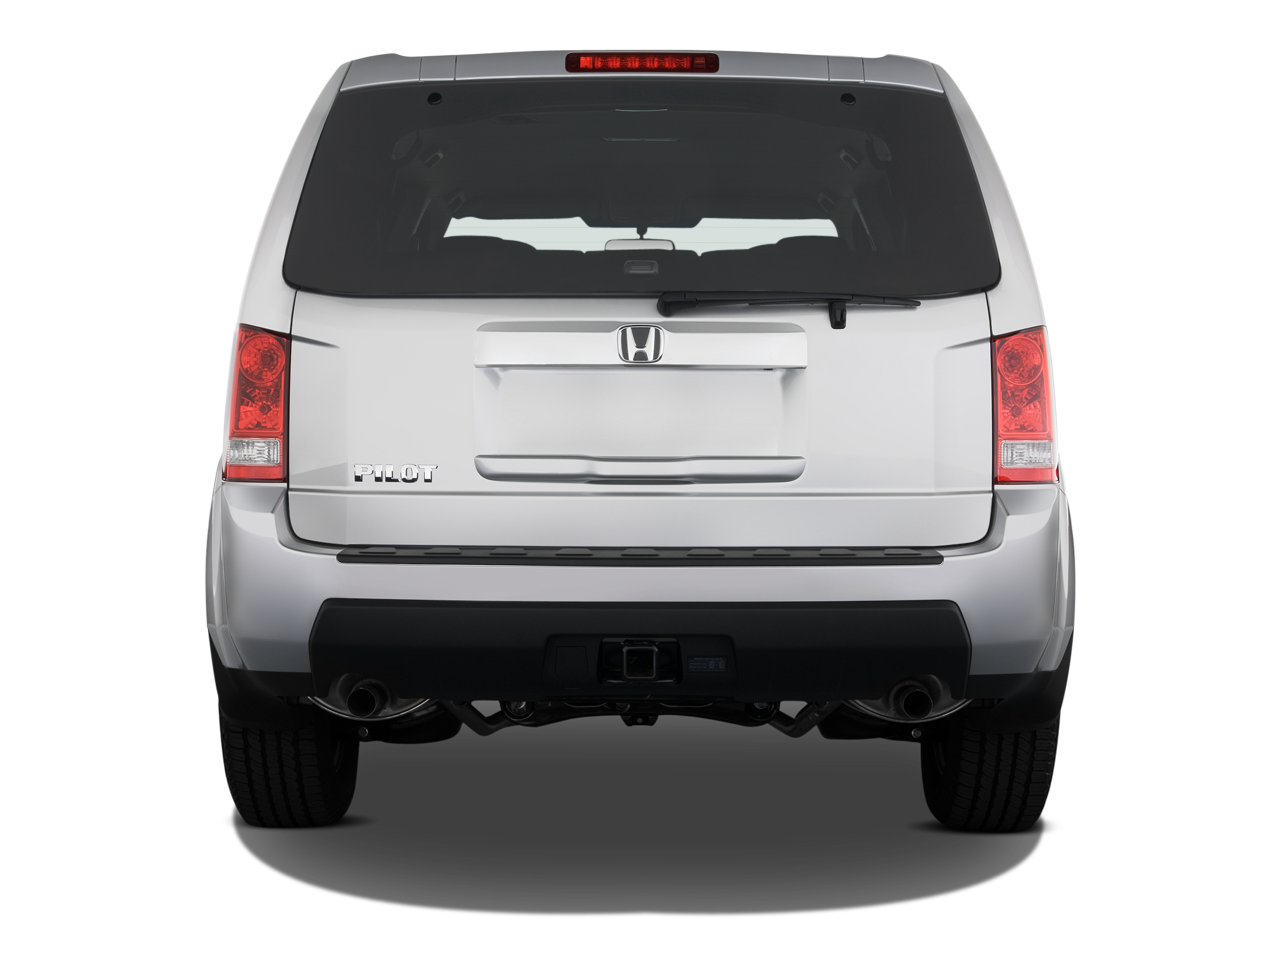 2009 Honda Pilot - Latest News, Features, and Reviews